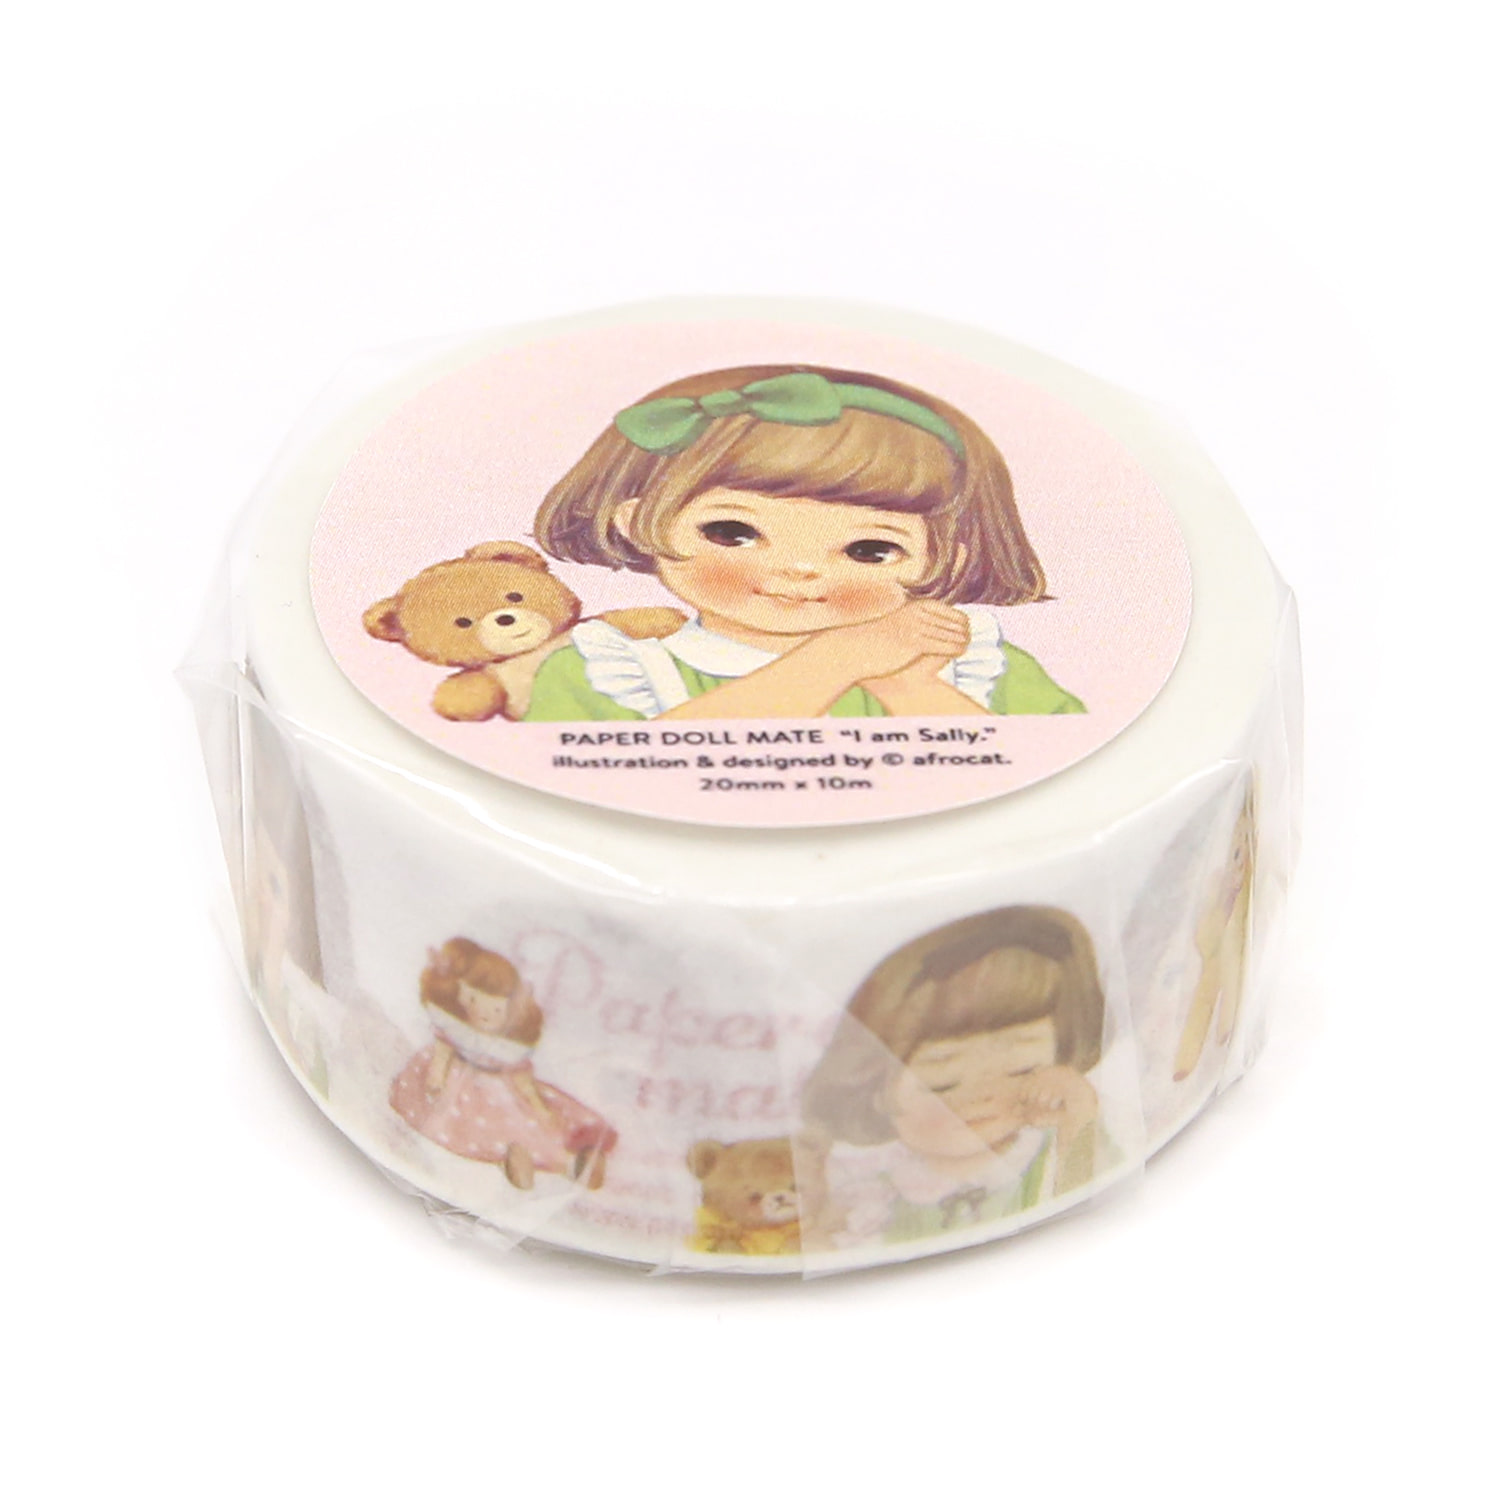 [afrocat masking tape] 6. Paper doll mate_ sally 20mm